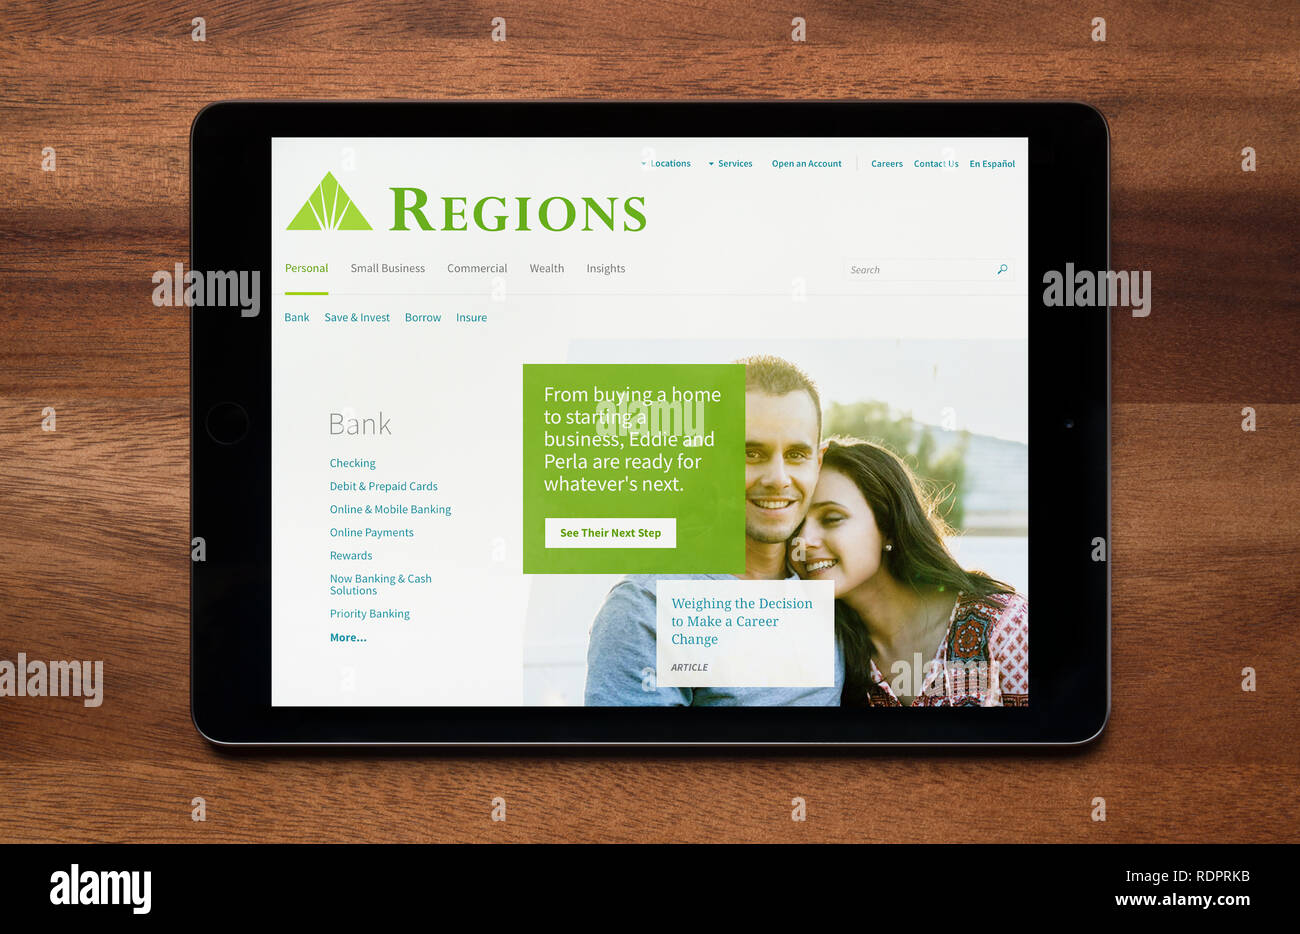 The website of Regions Financial Corporation is seen on an iPad tablet, which is resting on a wooden table (Editorial use only). - Stock Image